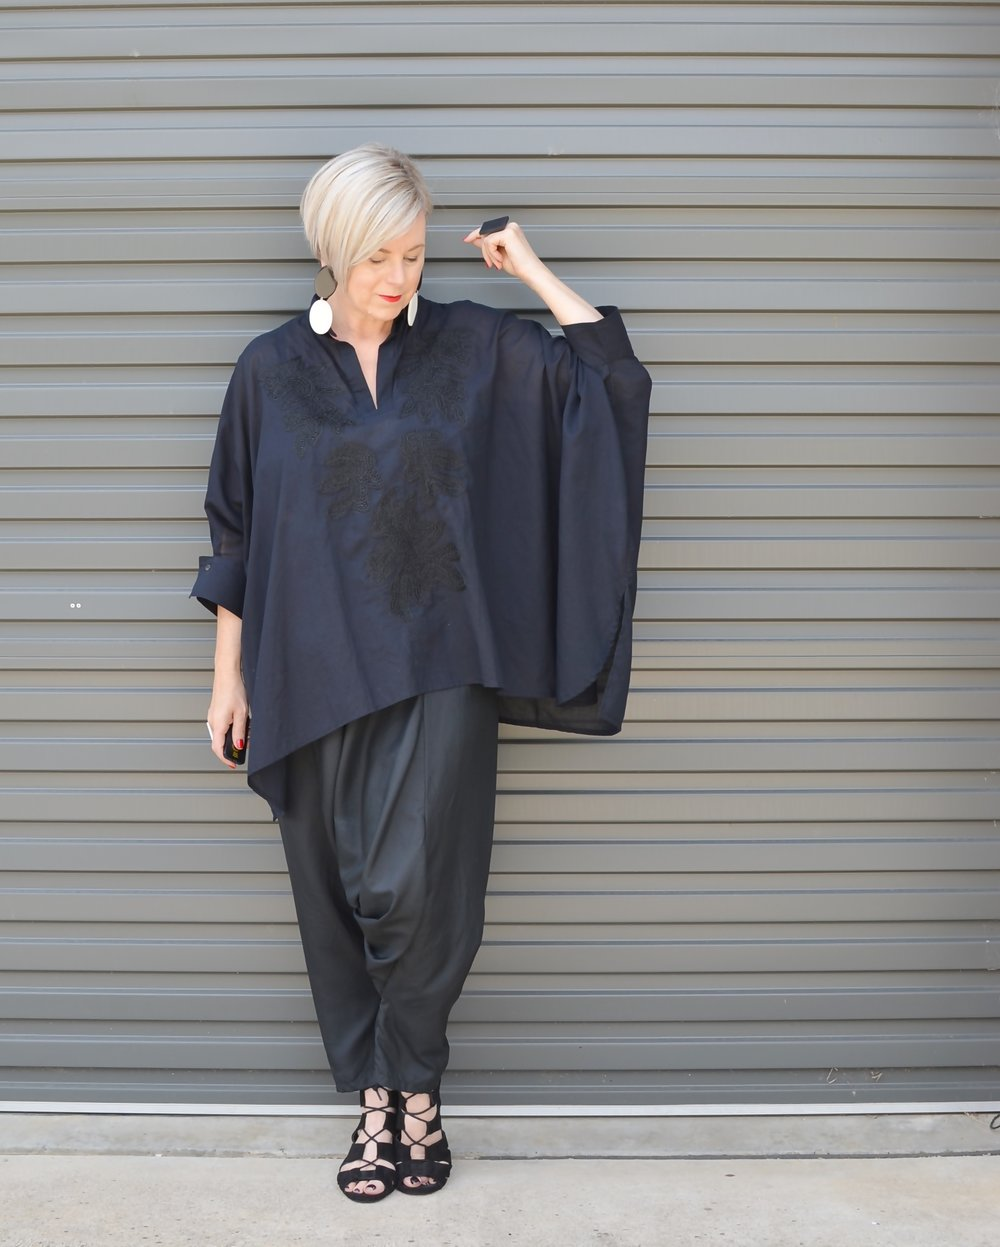 Tunic top and harem pants // A Week Of Elevated Classic Outfits With Deborah Gates From Stylish Murmurs on The Good Trade